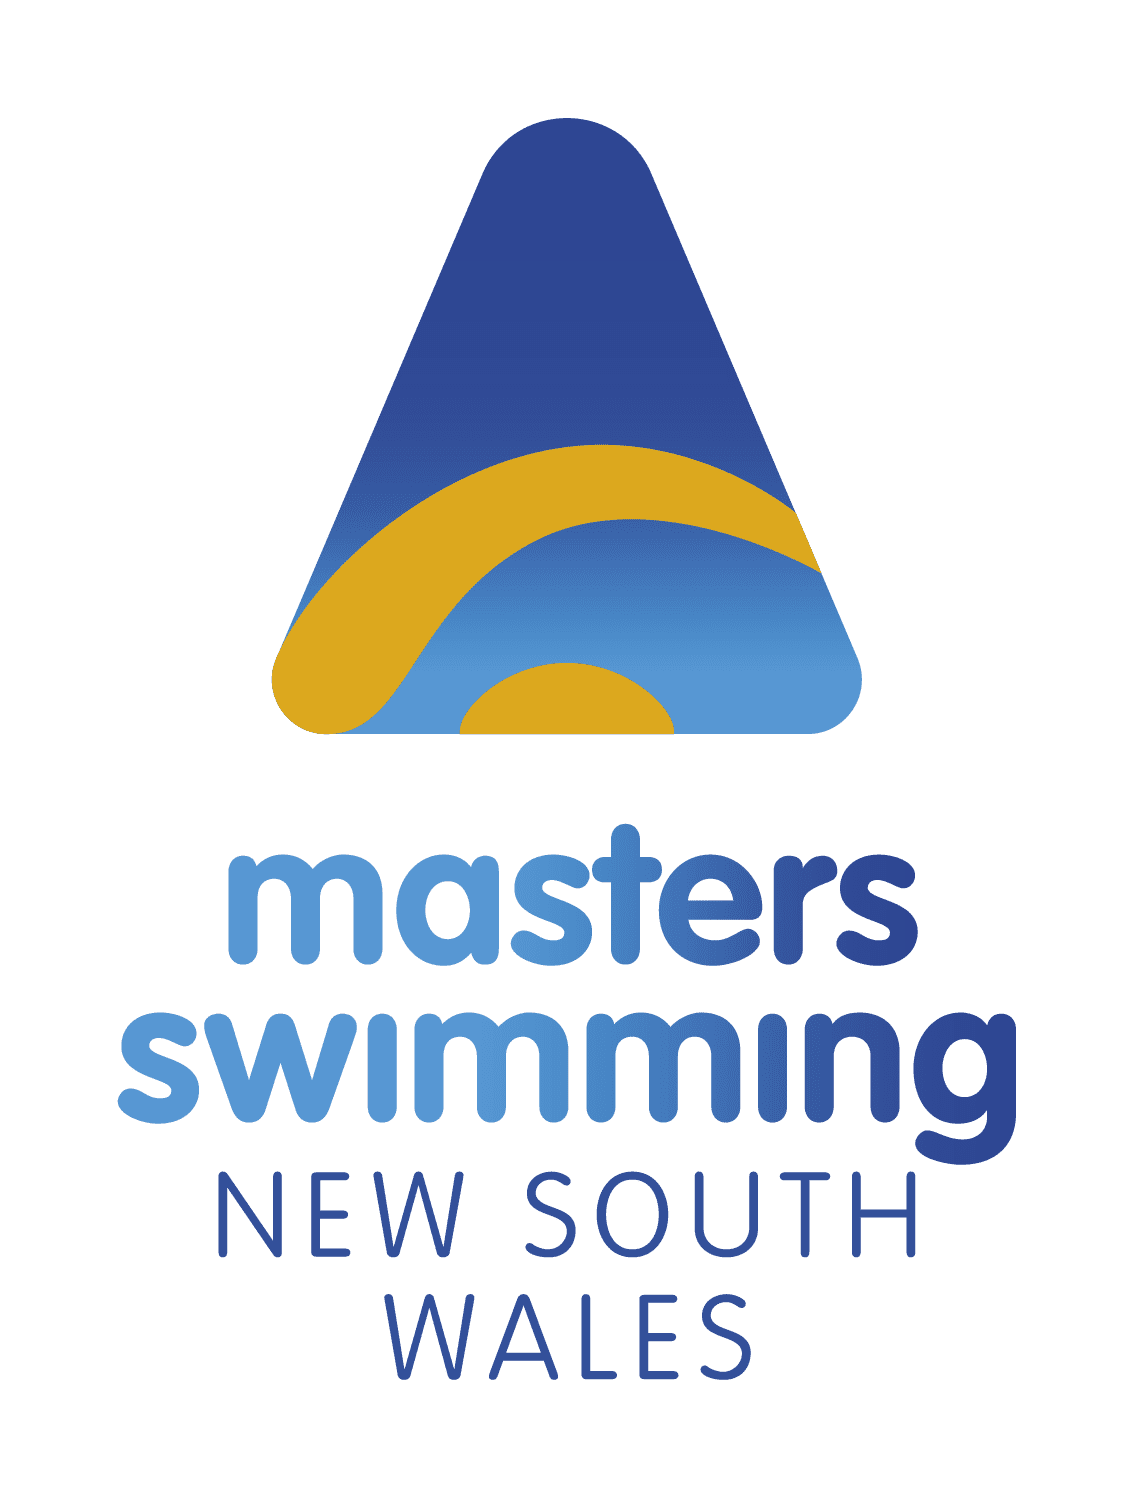 Masters Swimming NSW